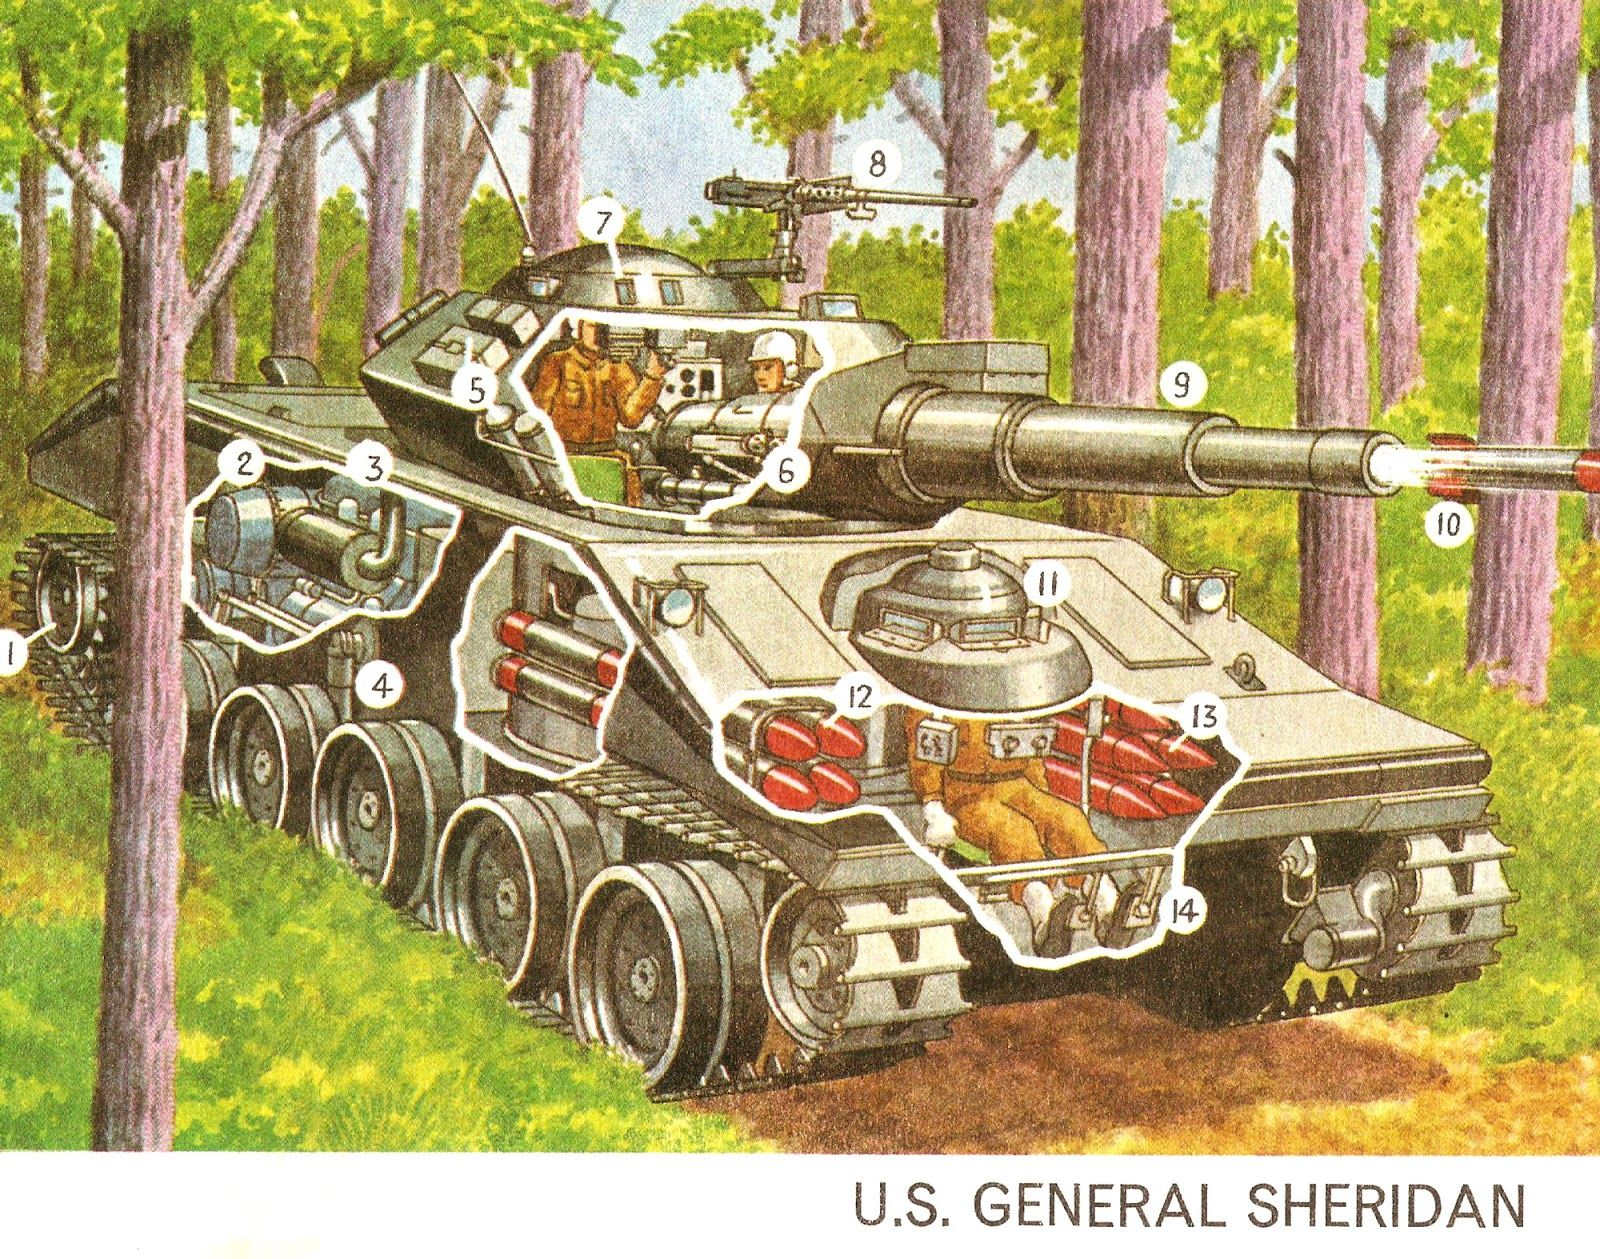 Us General Sheridan Tank Cutaway Cutaways Pinterest Merkava Schematic